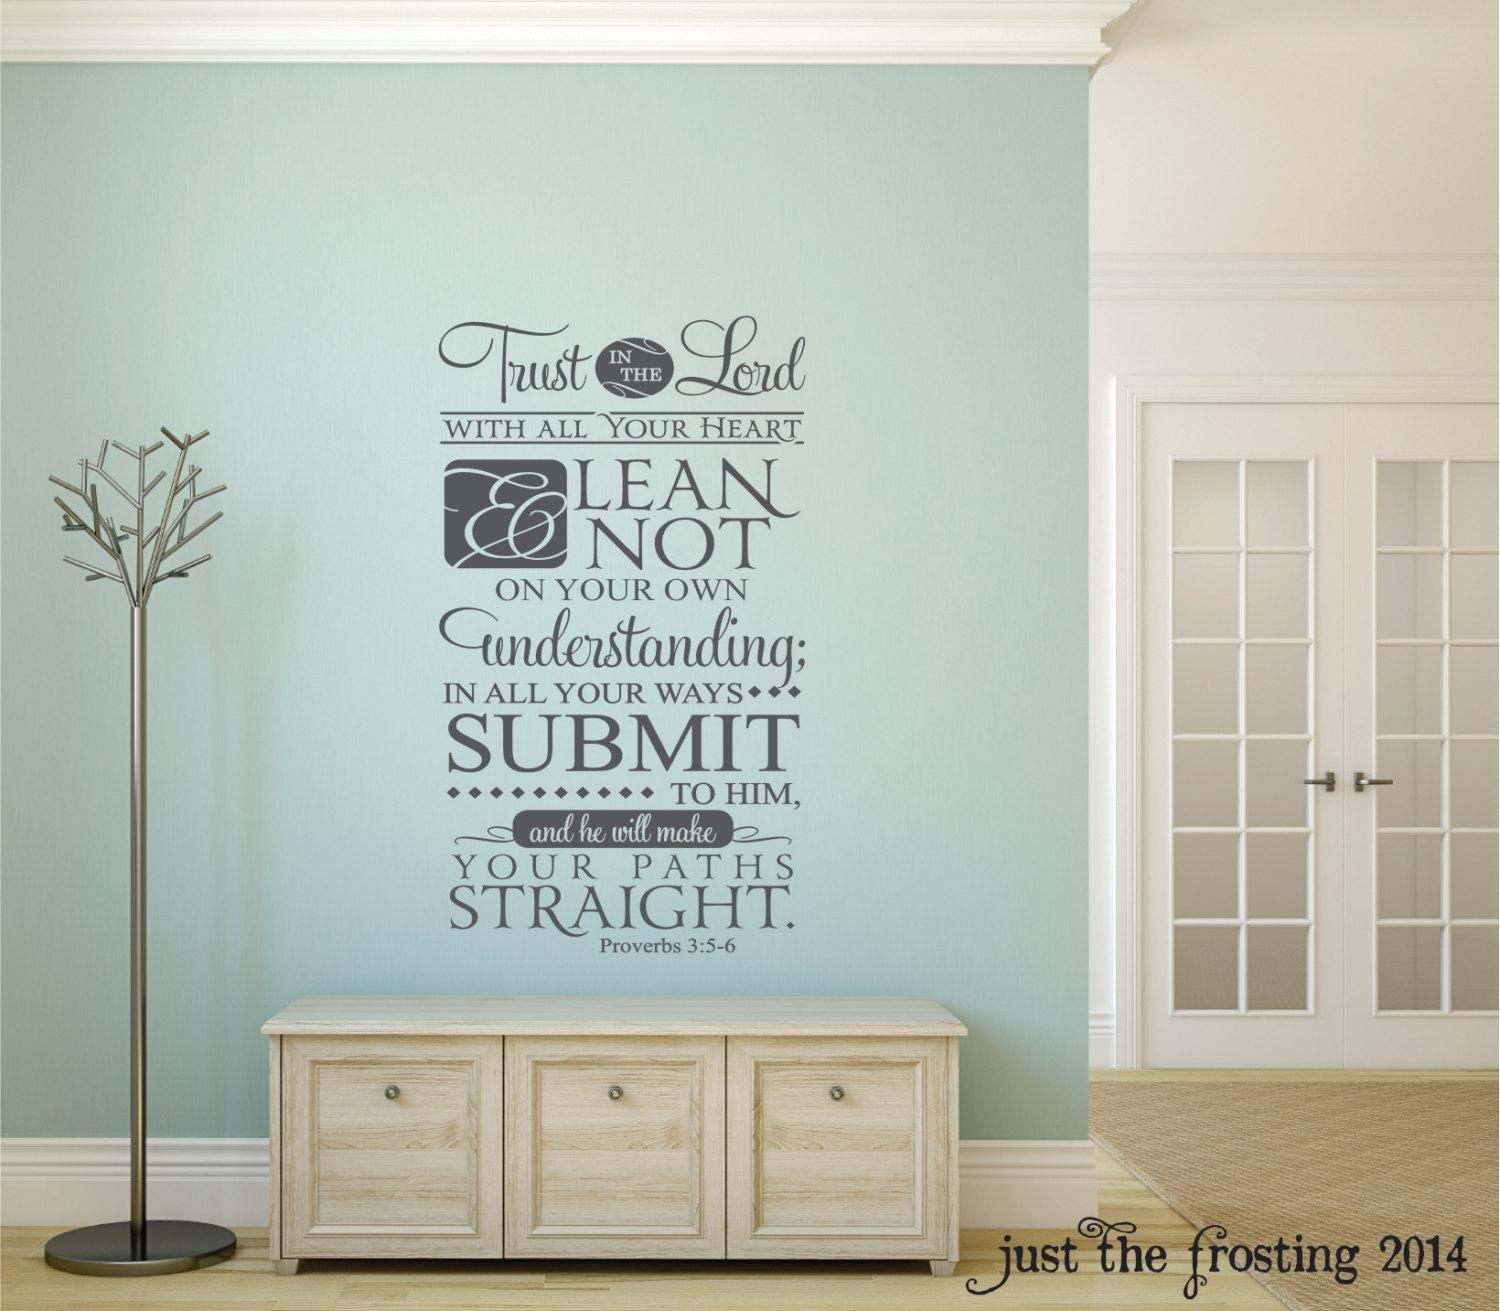 Trust In The Lord Wall Decal Proverbs 3:5 6 Decal Vinyl Inside Scripture Vinyl Wall Art (View 6 of 20)